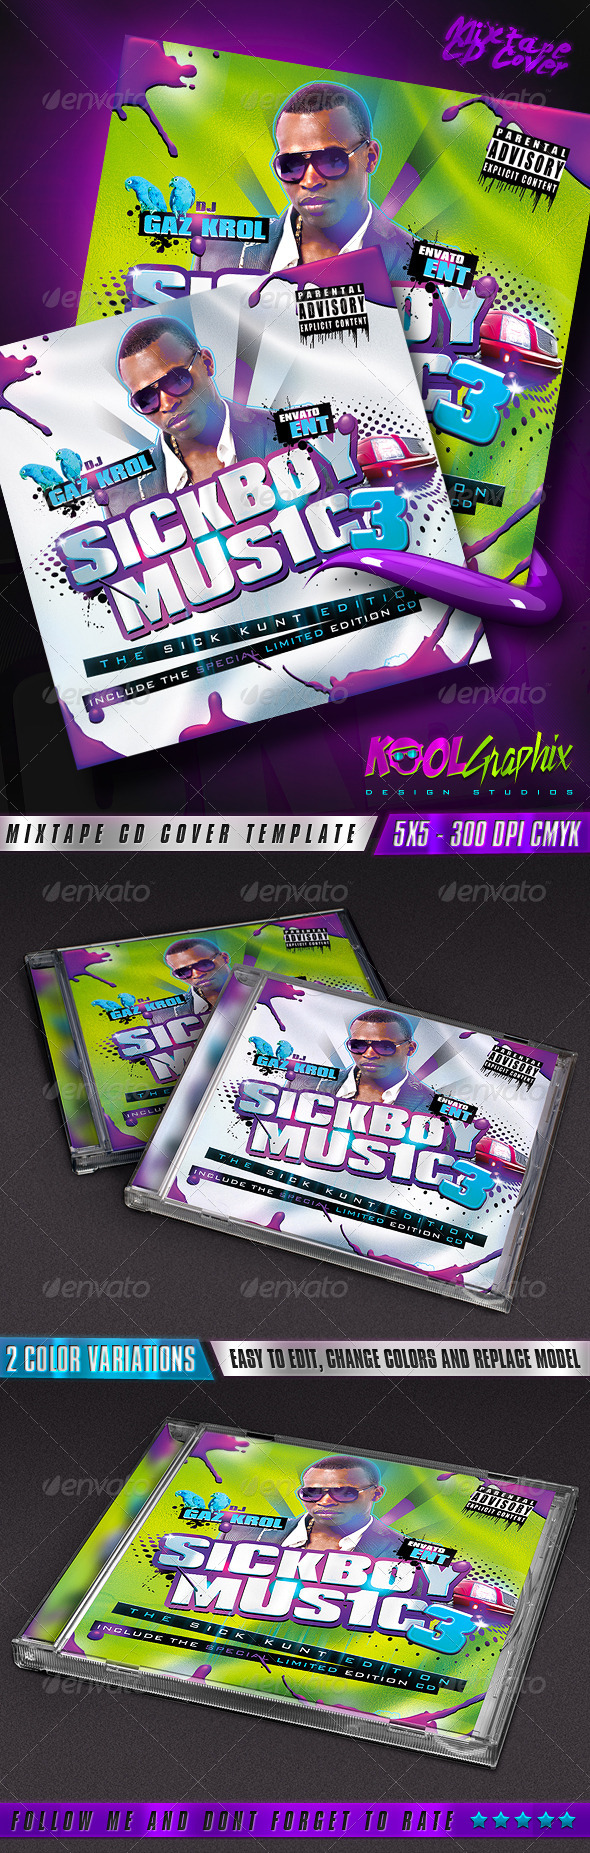 GraphicRiver SickBoy Music Mixtape CD Cover 5274688